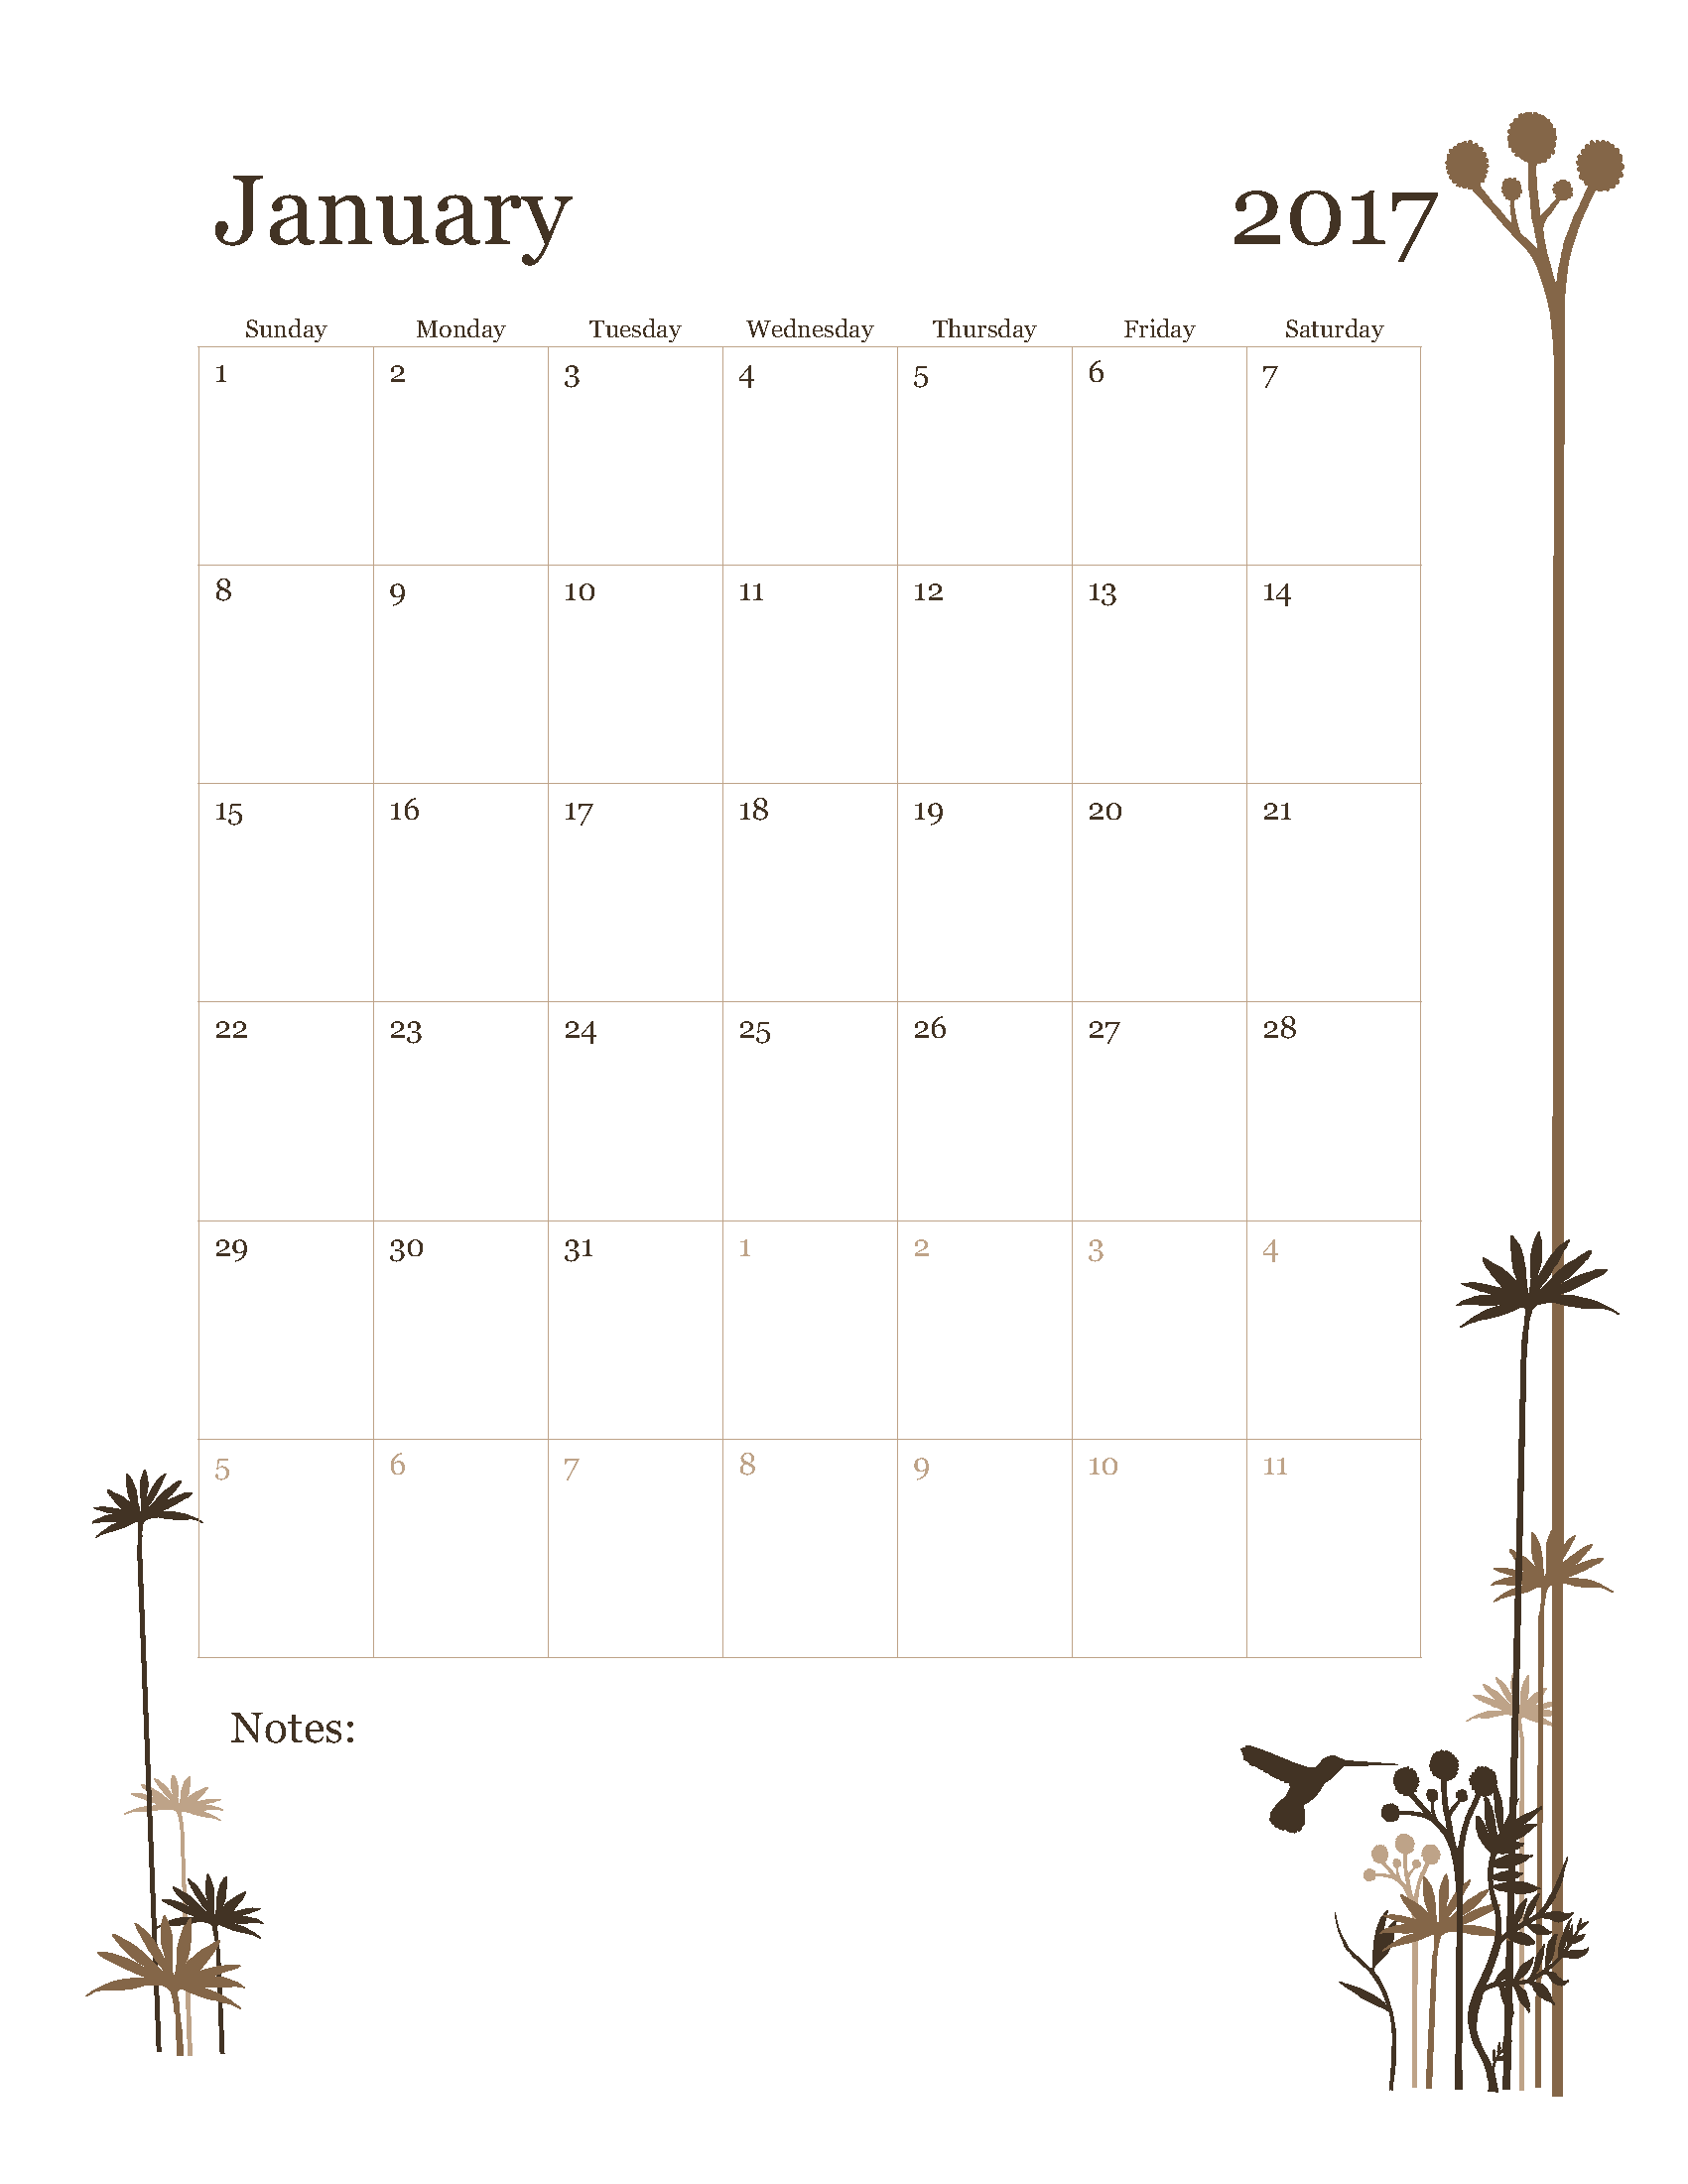 Free January 2017 Calendar Template Printable Start on Sunday - HummingBird design